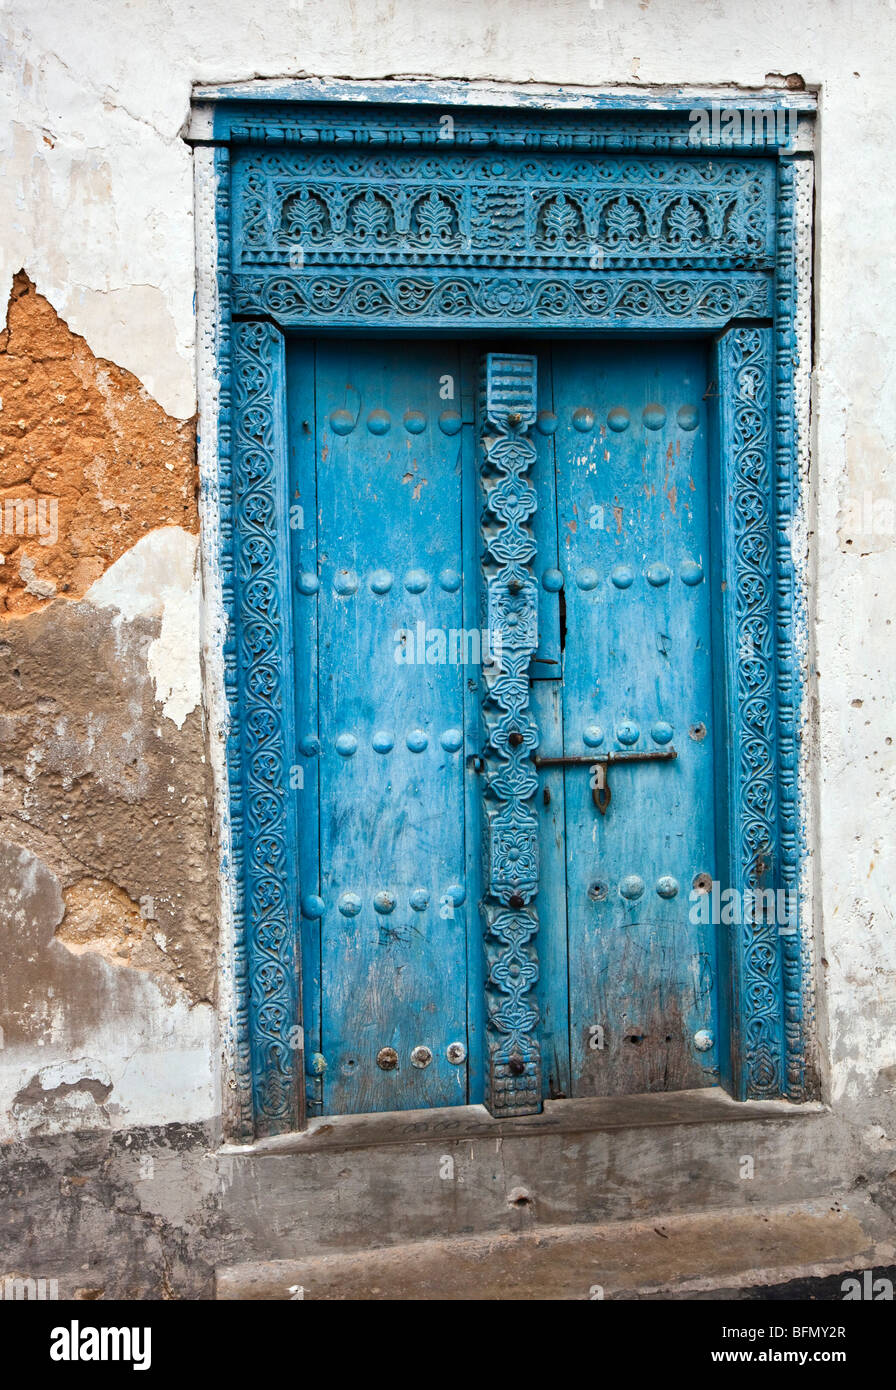 Tanzania, Zanzibar, Stone Town. A painted carved wooden door of a house in Stone Town. - Stock Image